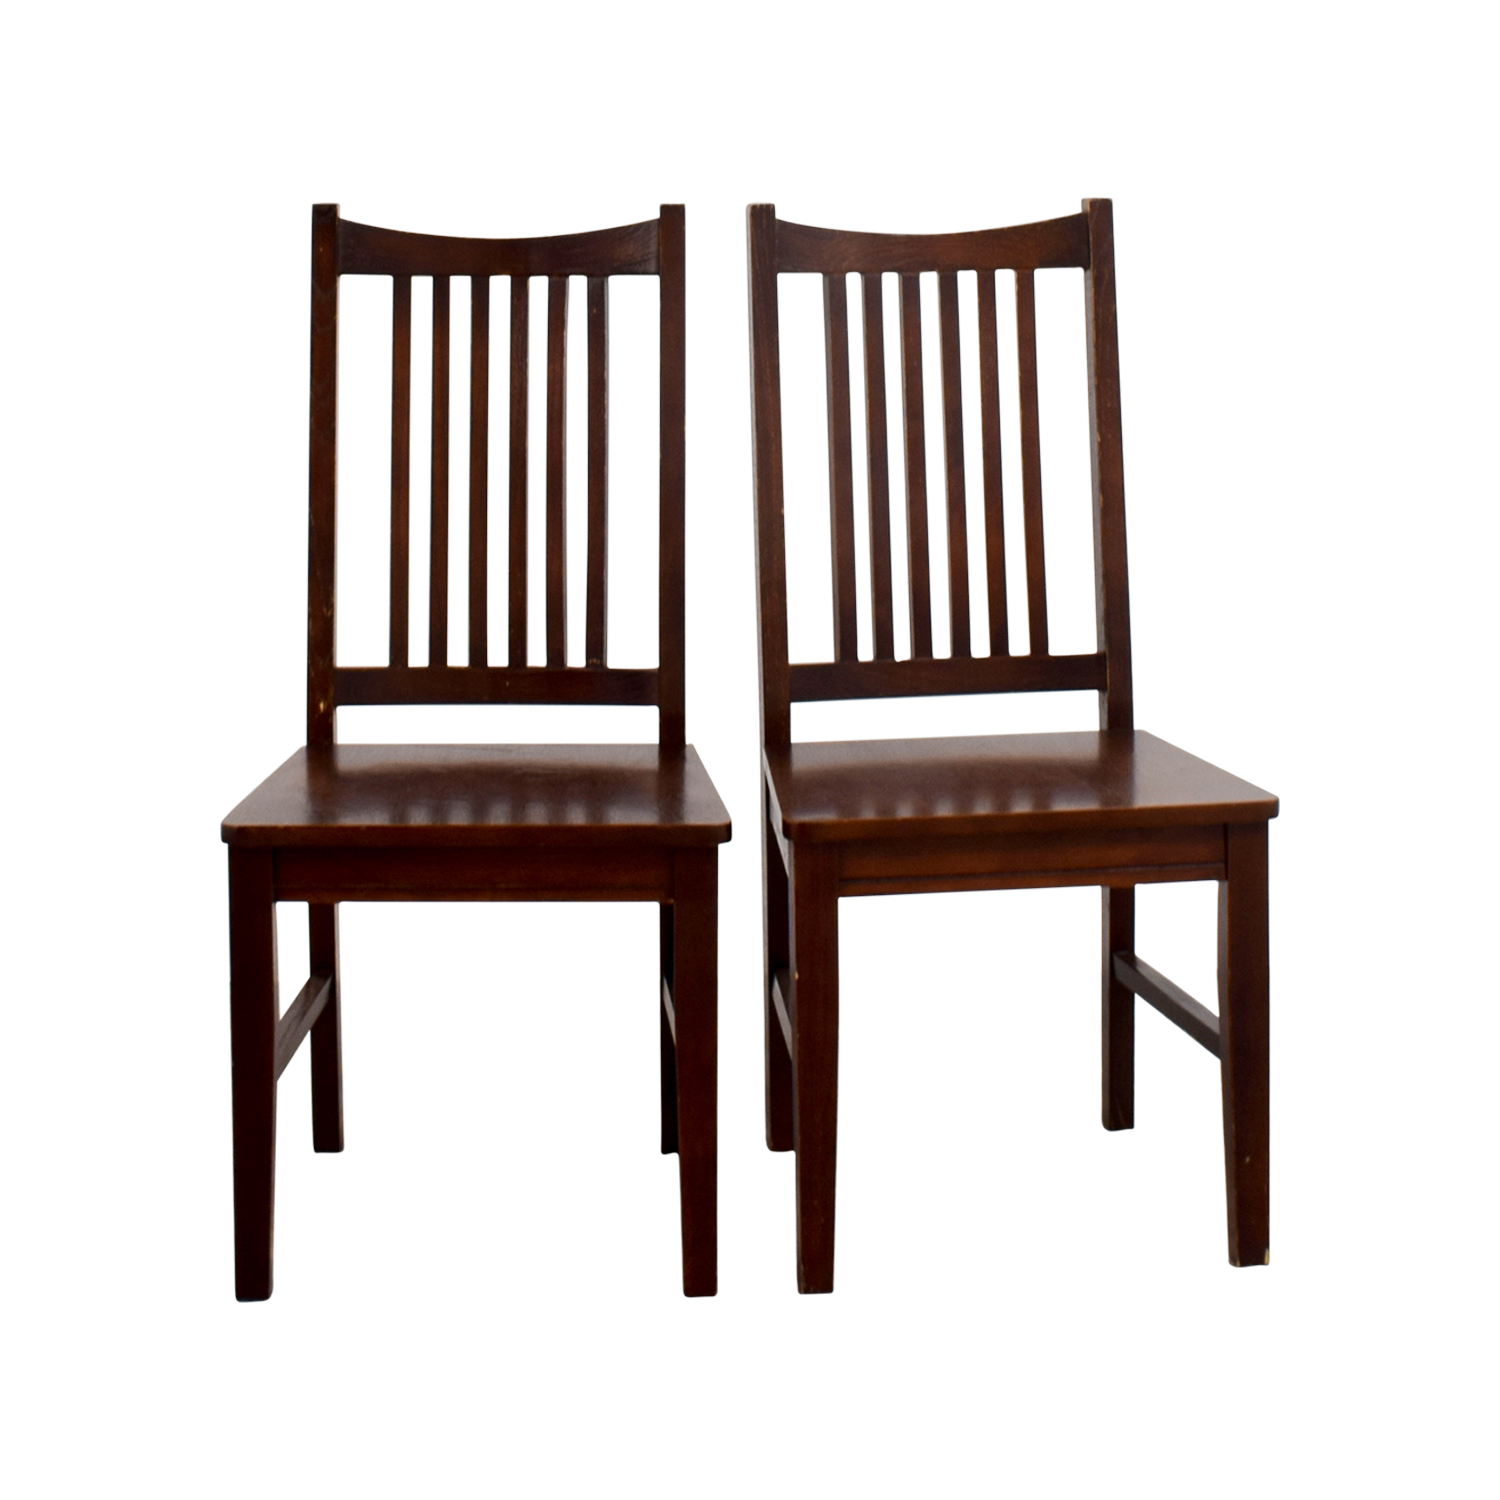 Classic Solid Wood Chairs used